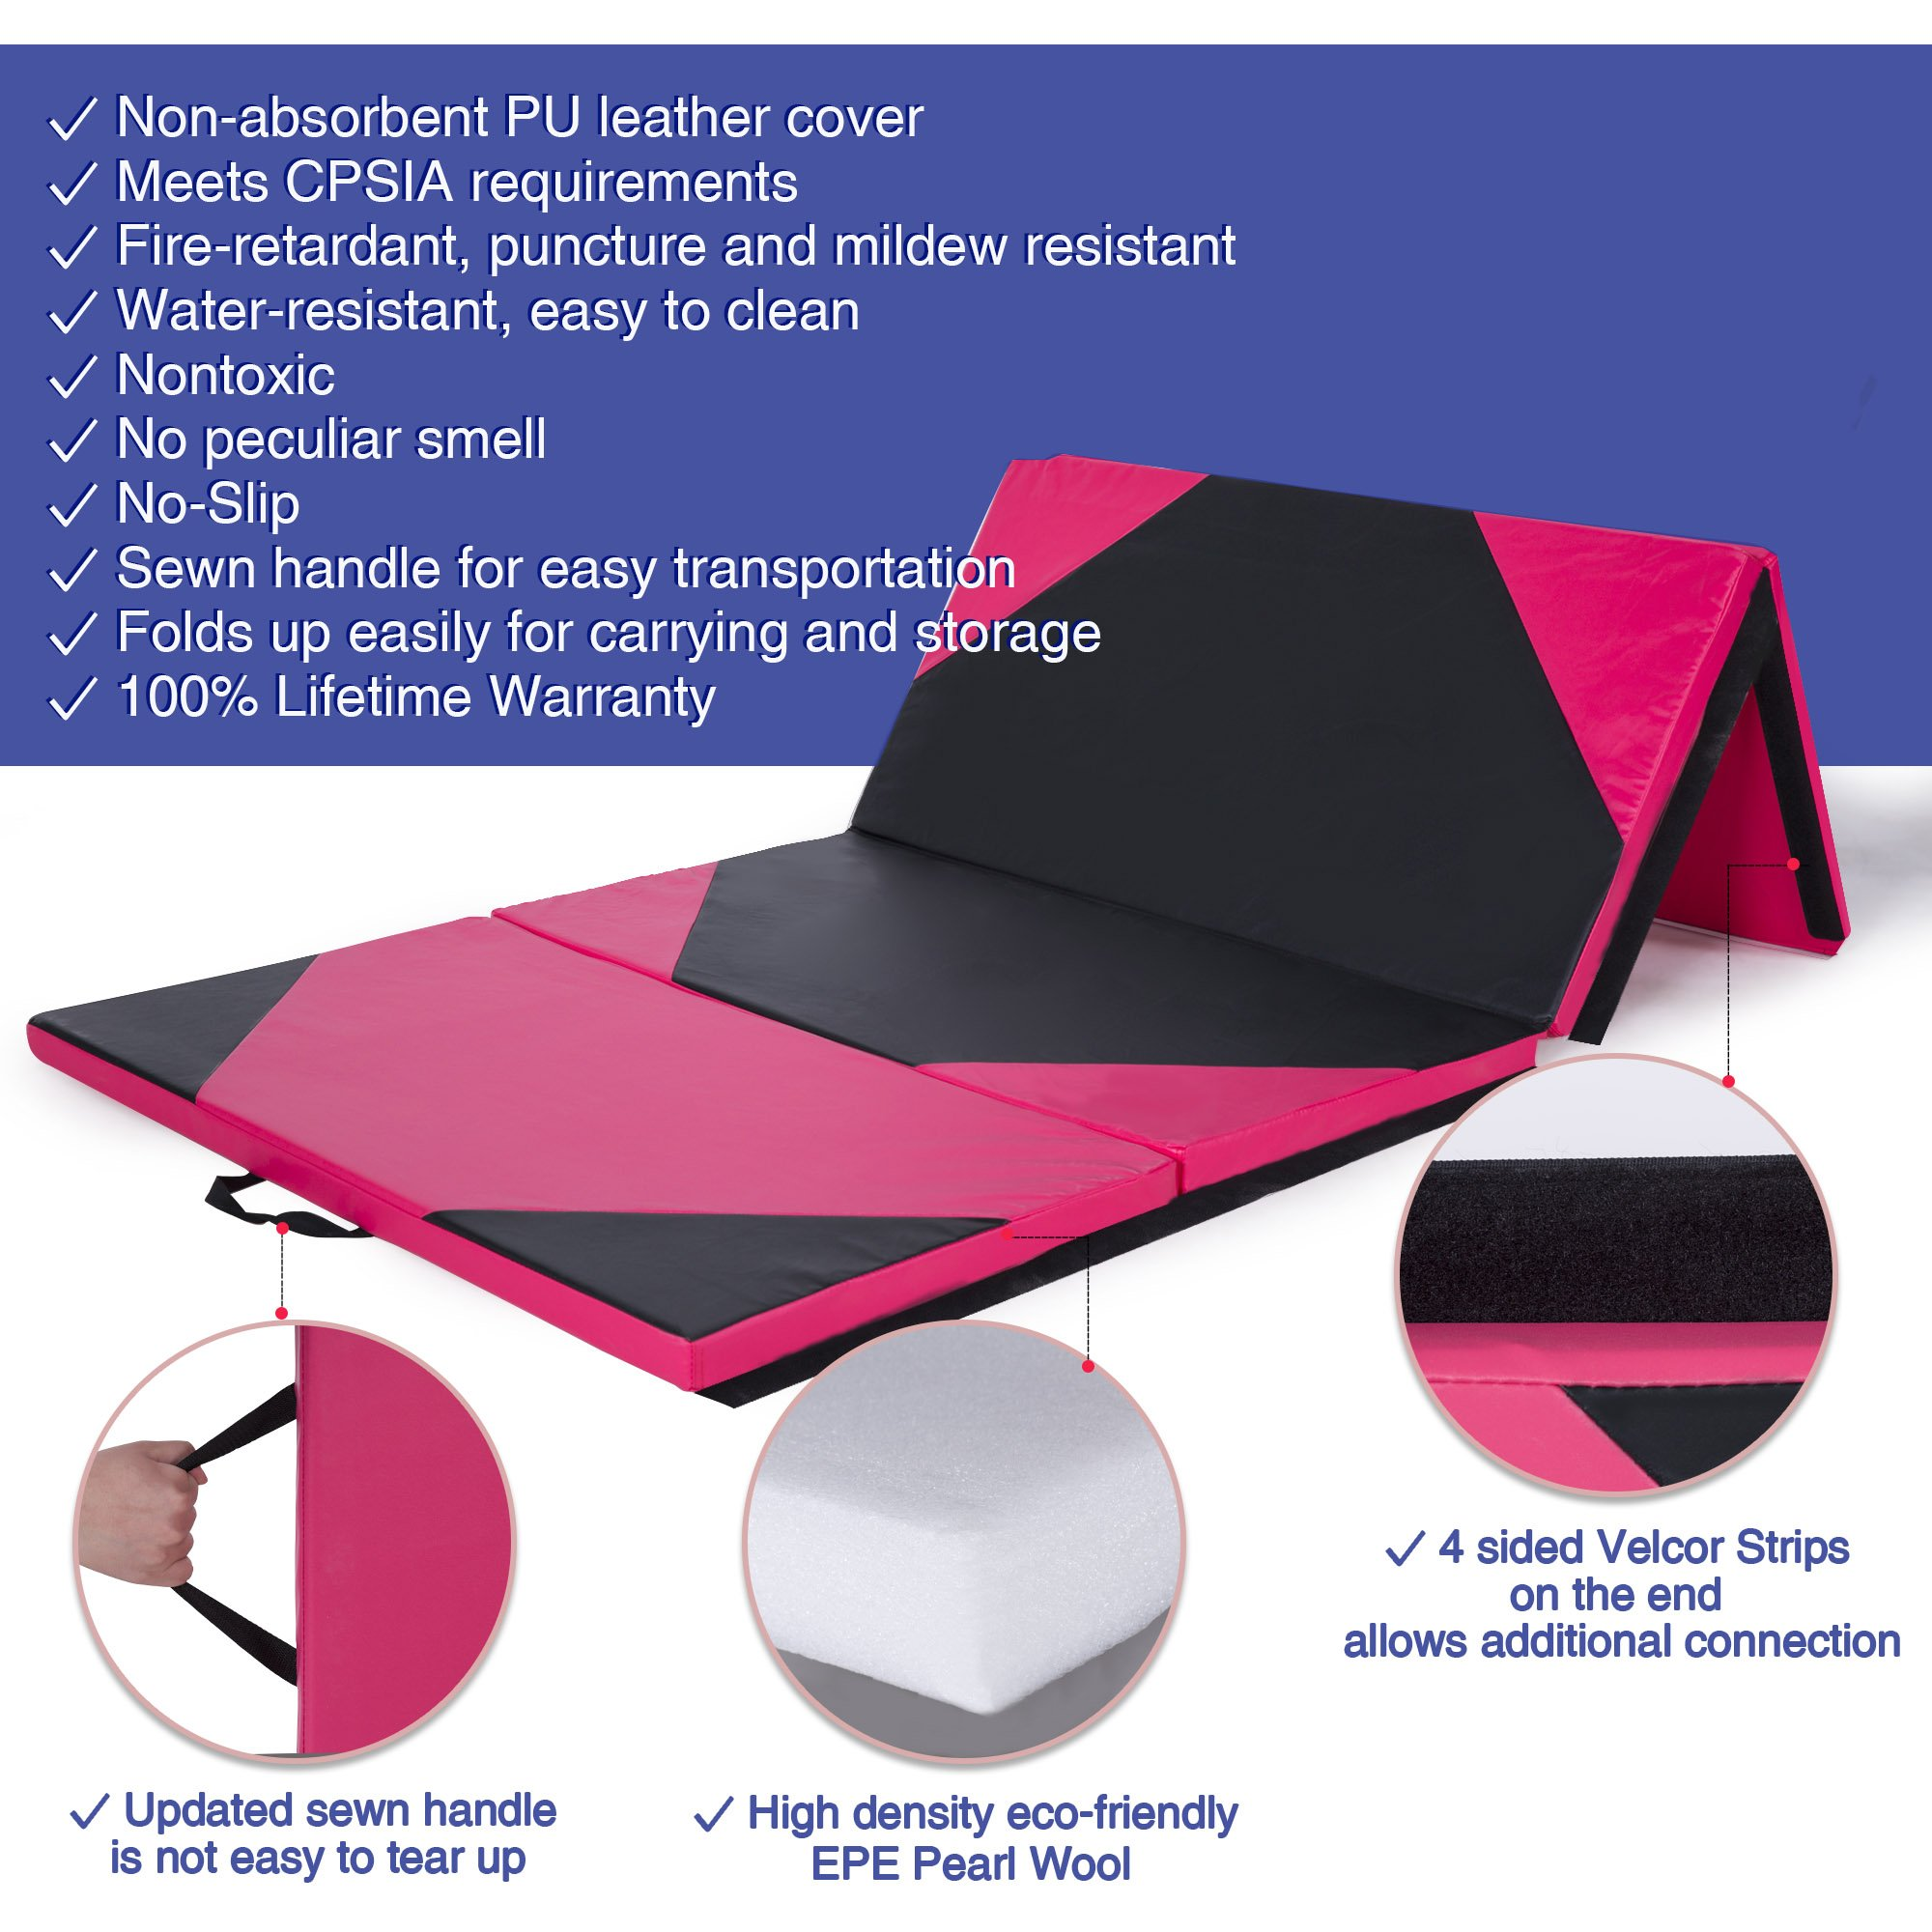 Sportmad 4'x10'x2 Thick Folding Panel Gymnastics Tumbling Mat Gym, Fitness, Exercise (Black/Pink) by Sportmad (Image #3)